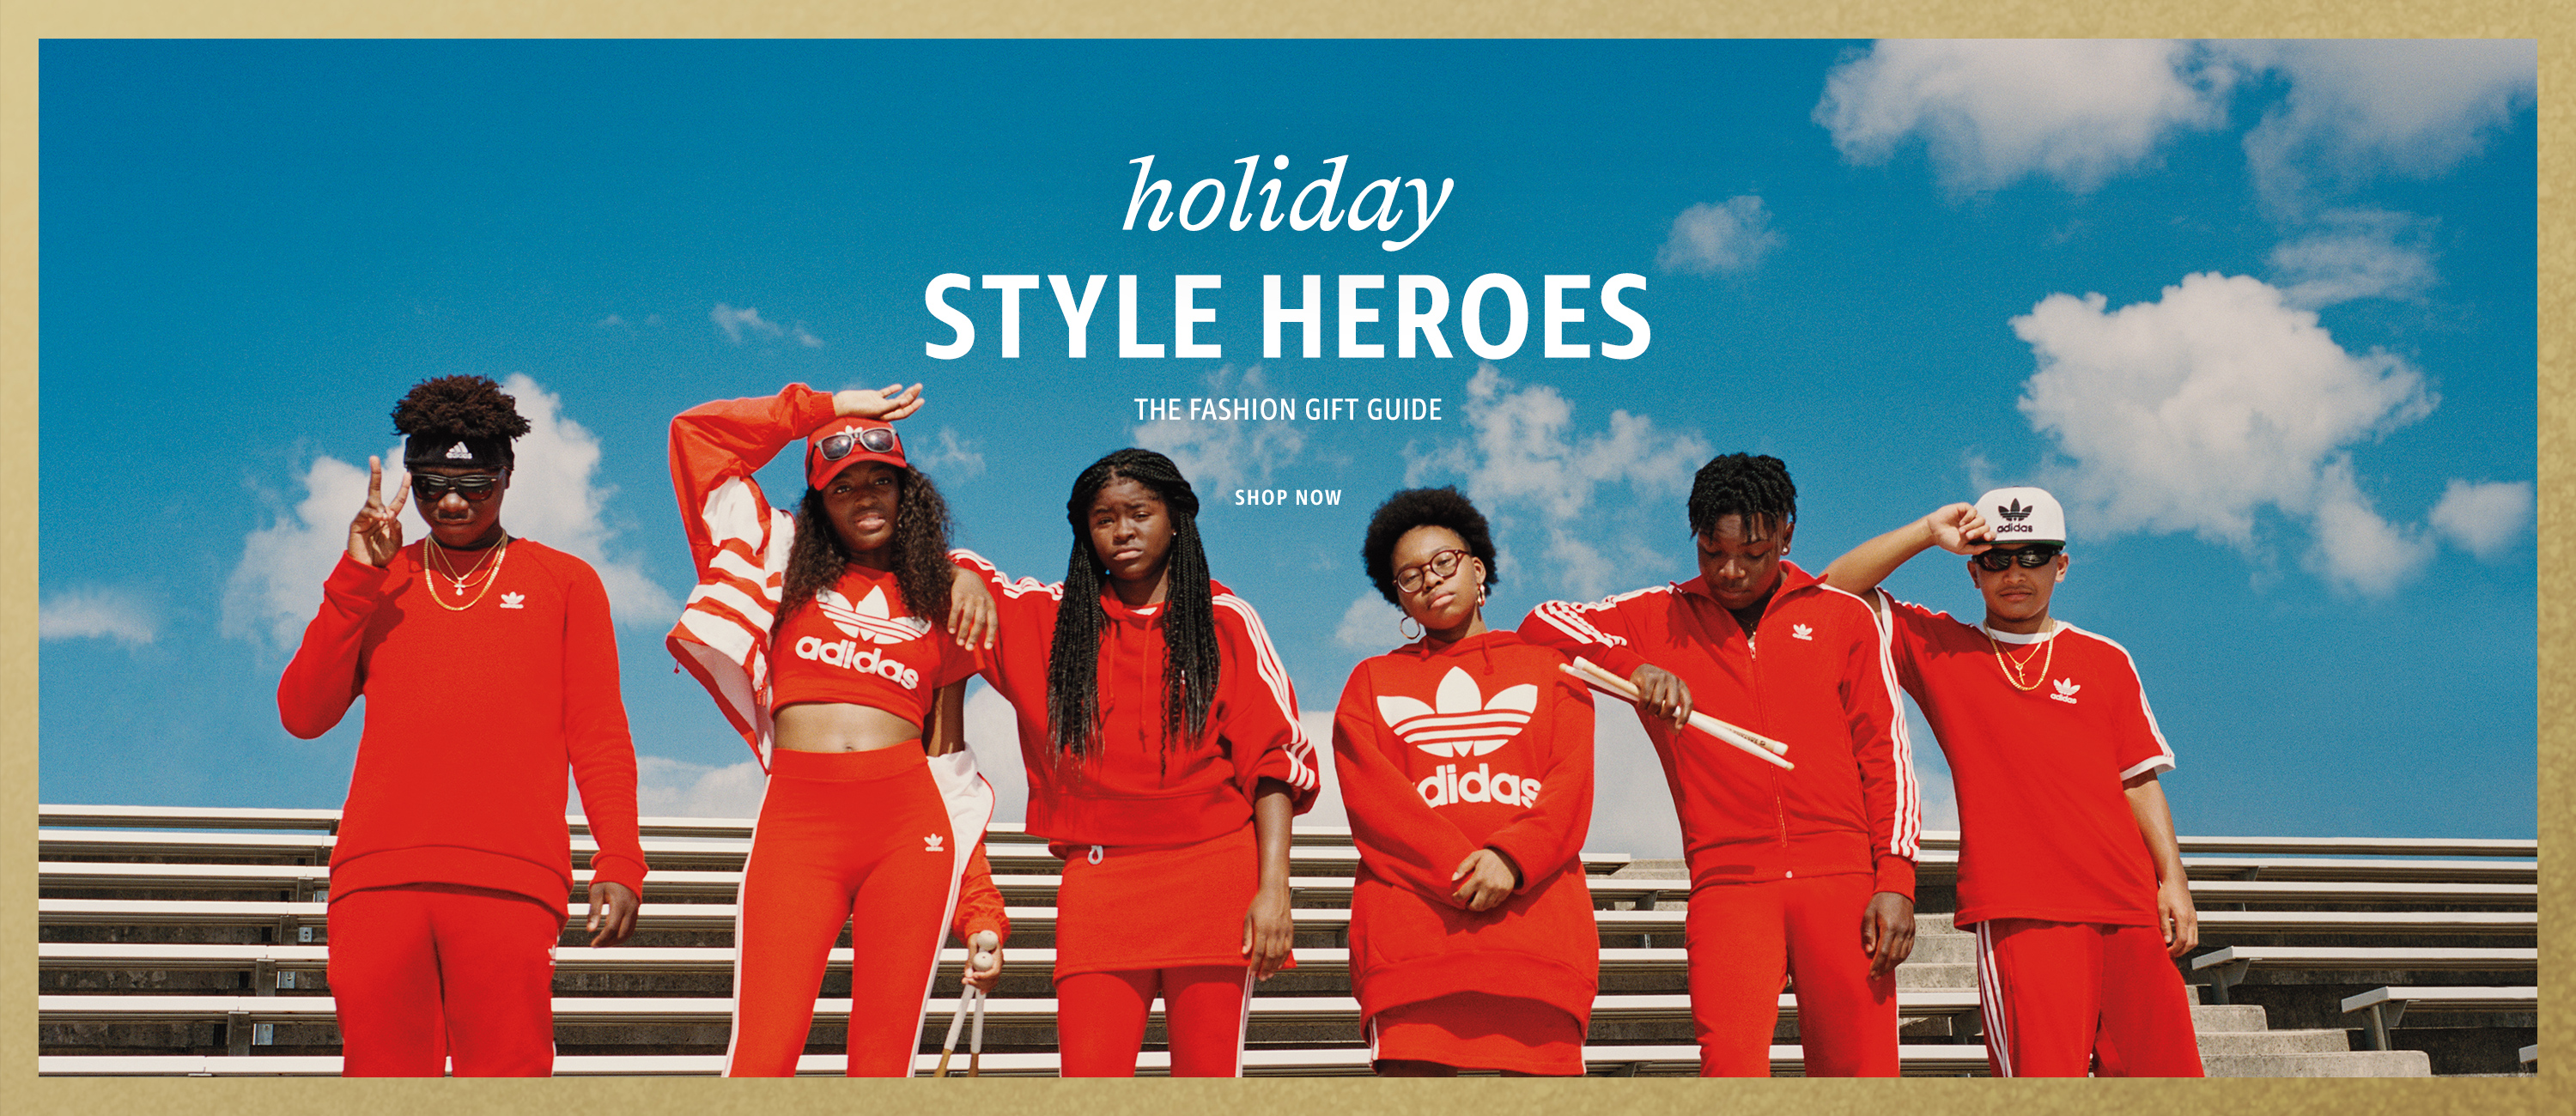 Holiday Style Heroes. The Fashion Gift Guide. Shop Now